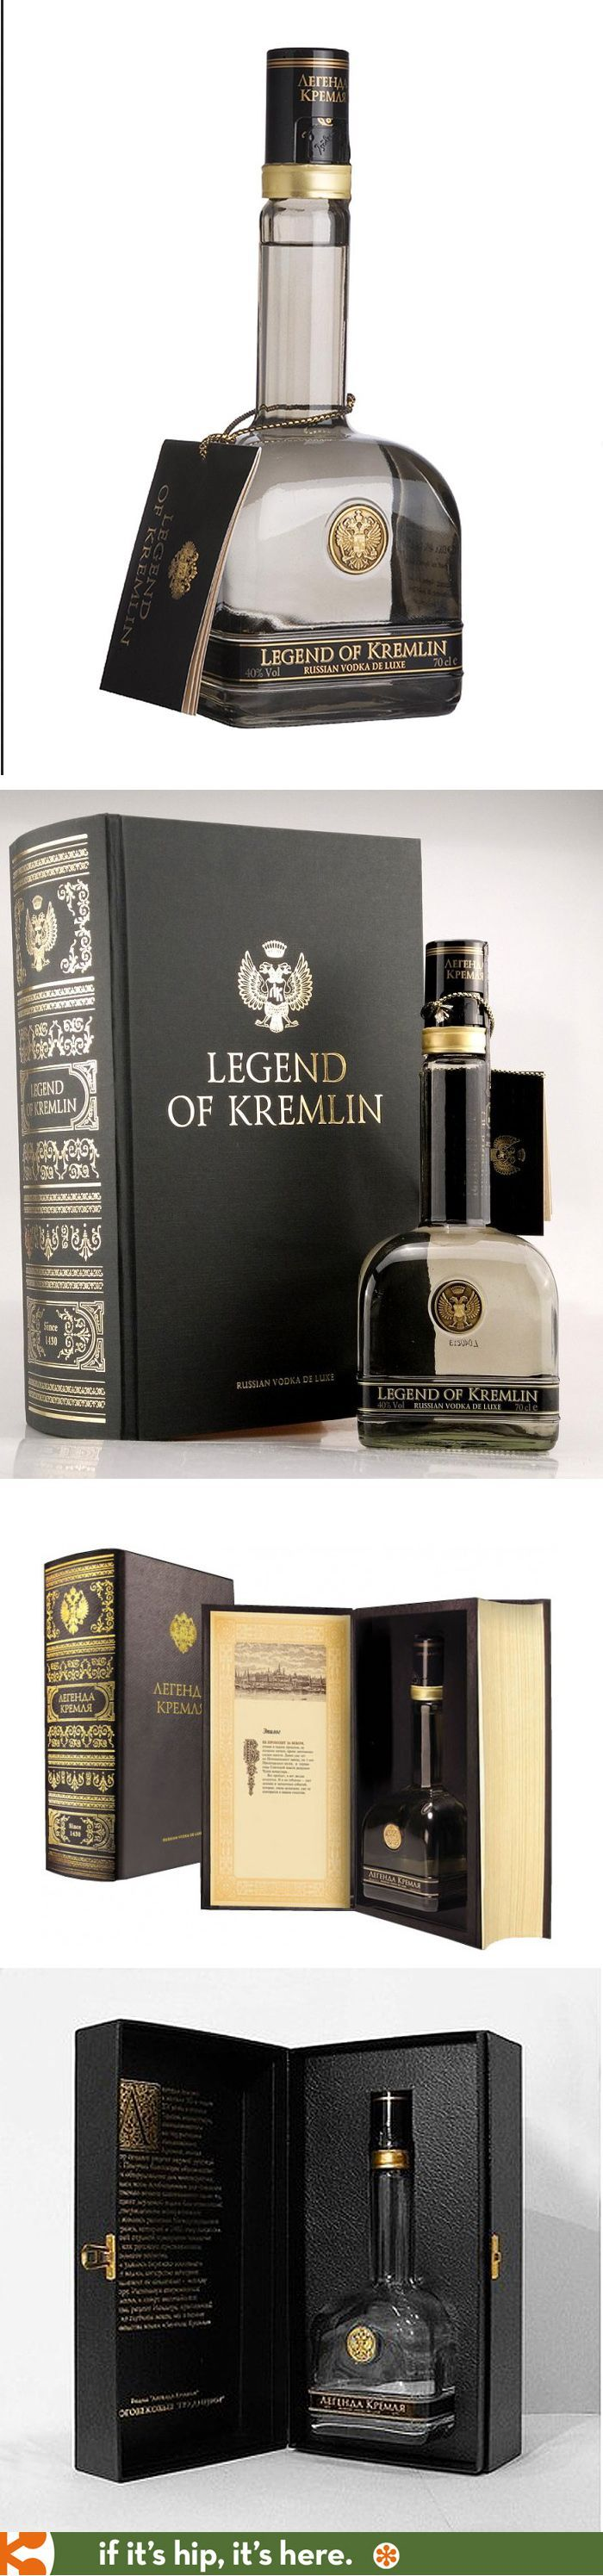 Legend Of Kremlin premium Vodka's special Book Packaging for the US and Russia.. Beautiful booze #packaging PD